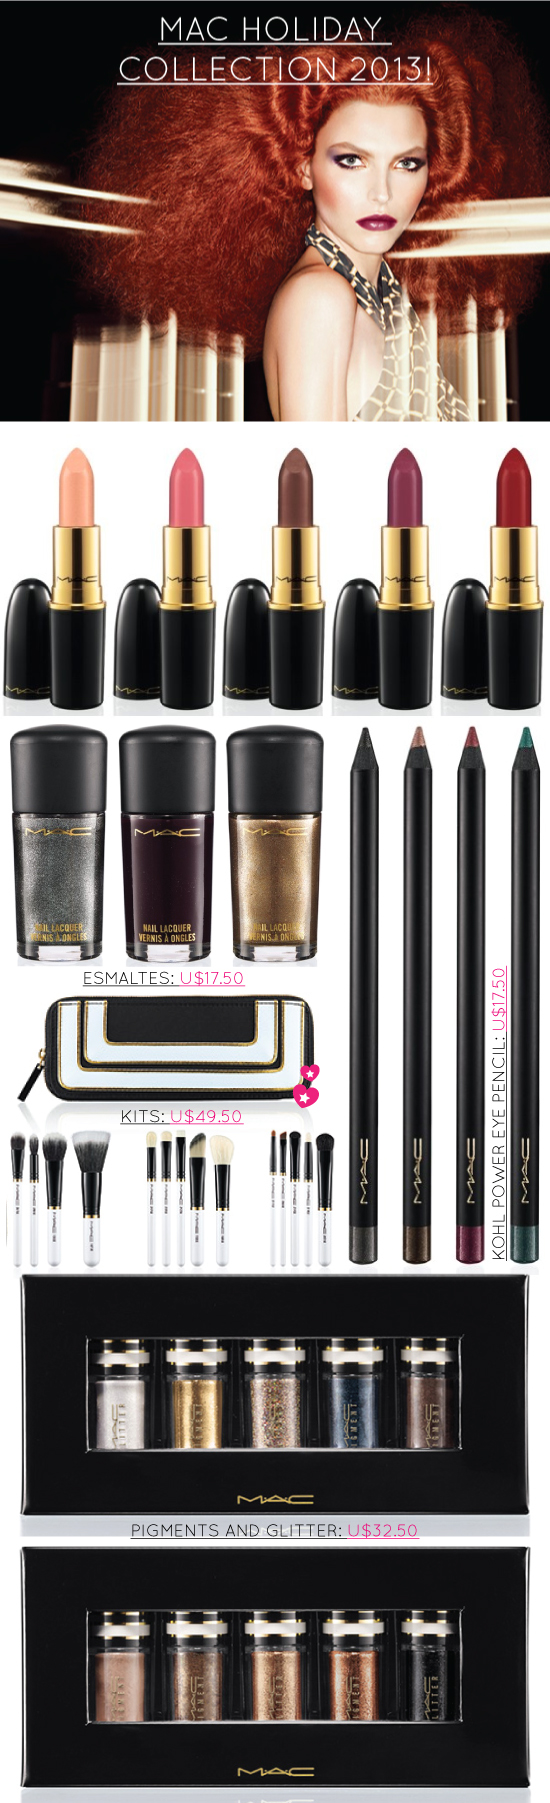 MAC-holliday-collection-2013-batons-esmaltes-produtos-makes